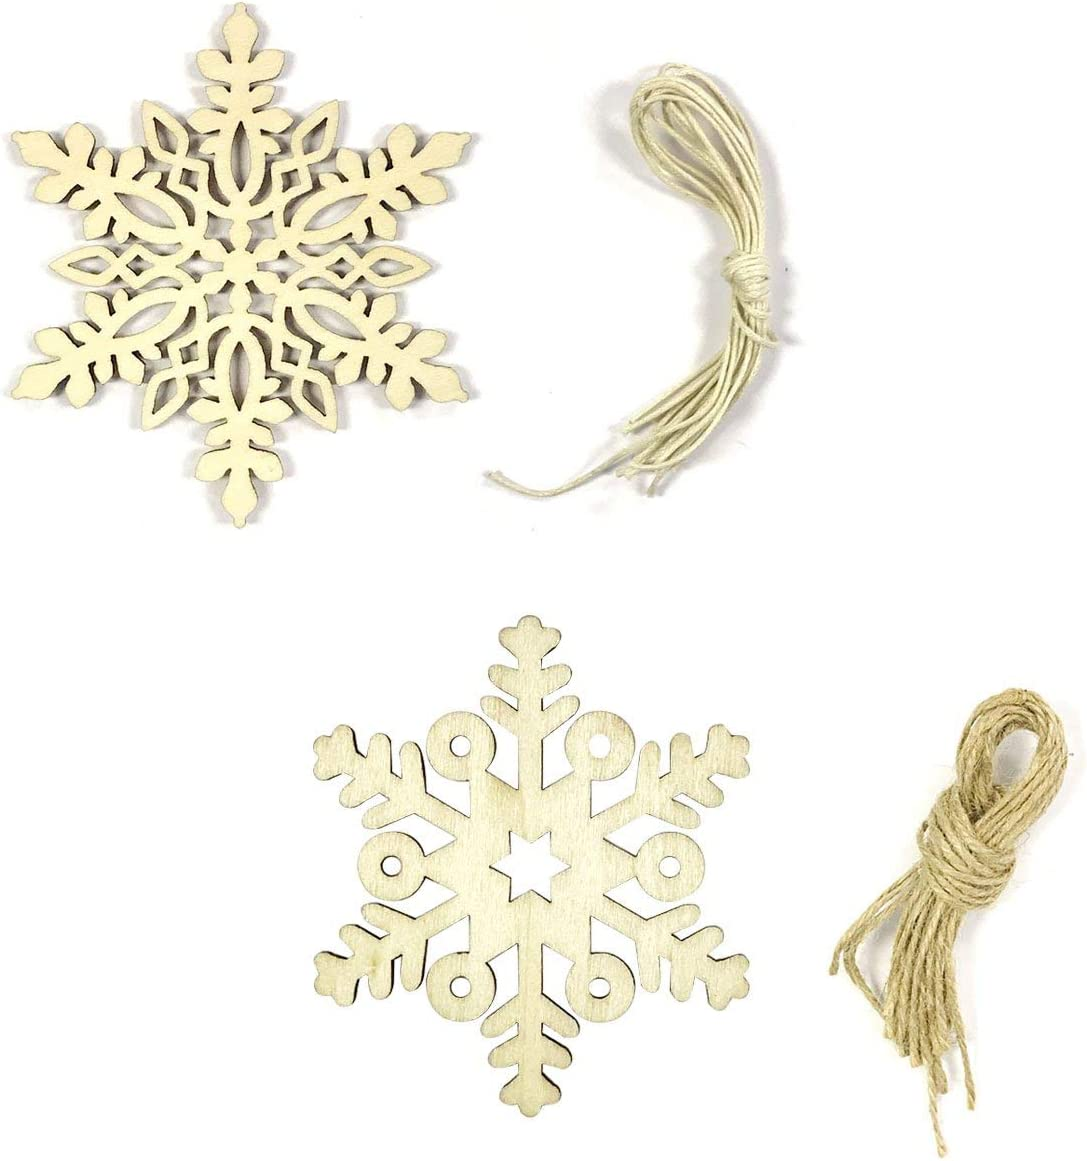 Amazon Com Wrapables Wooden Snowflake Hanging Ornament Christmas Décor Set Of 20 Home Kitchen